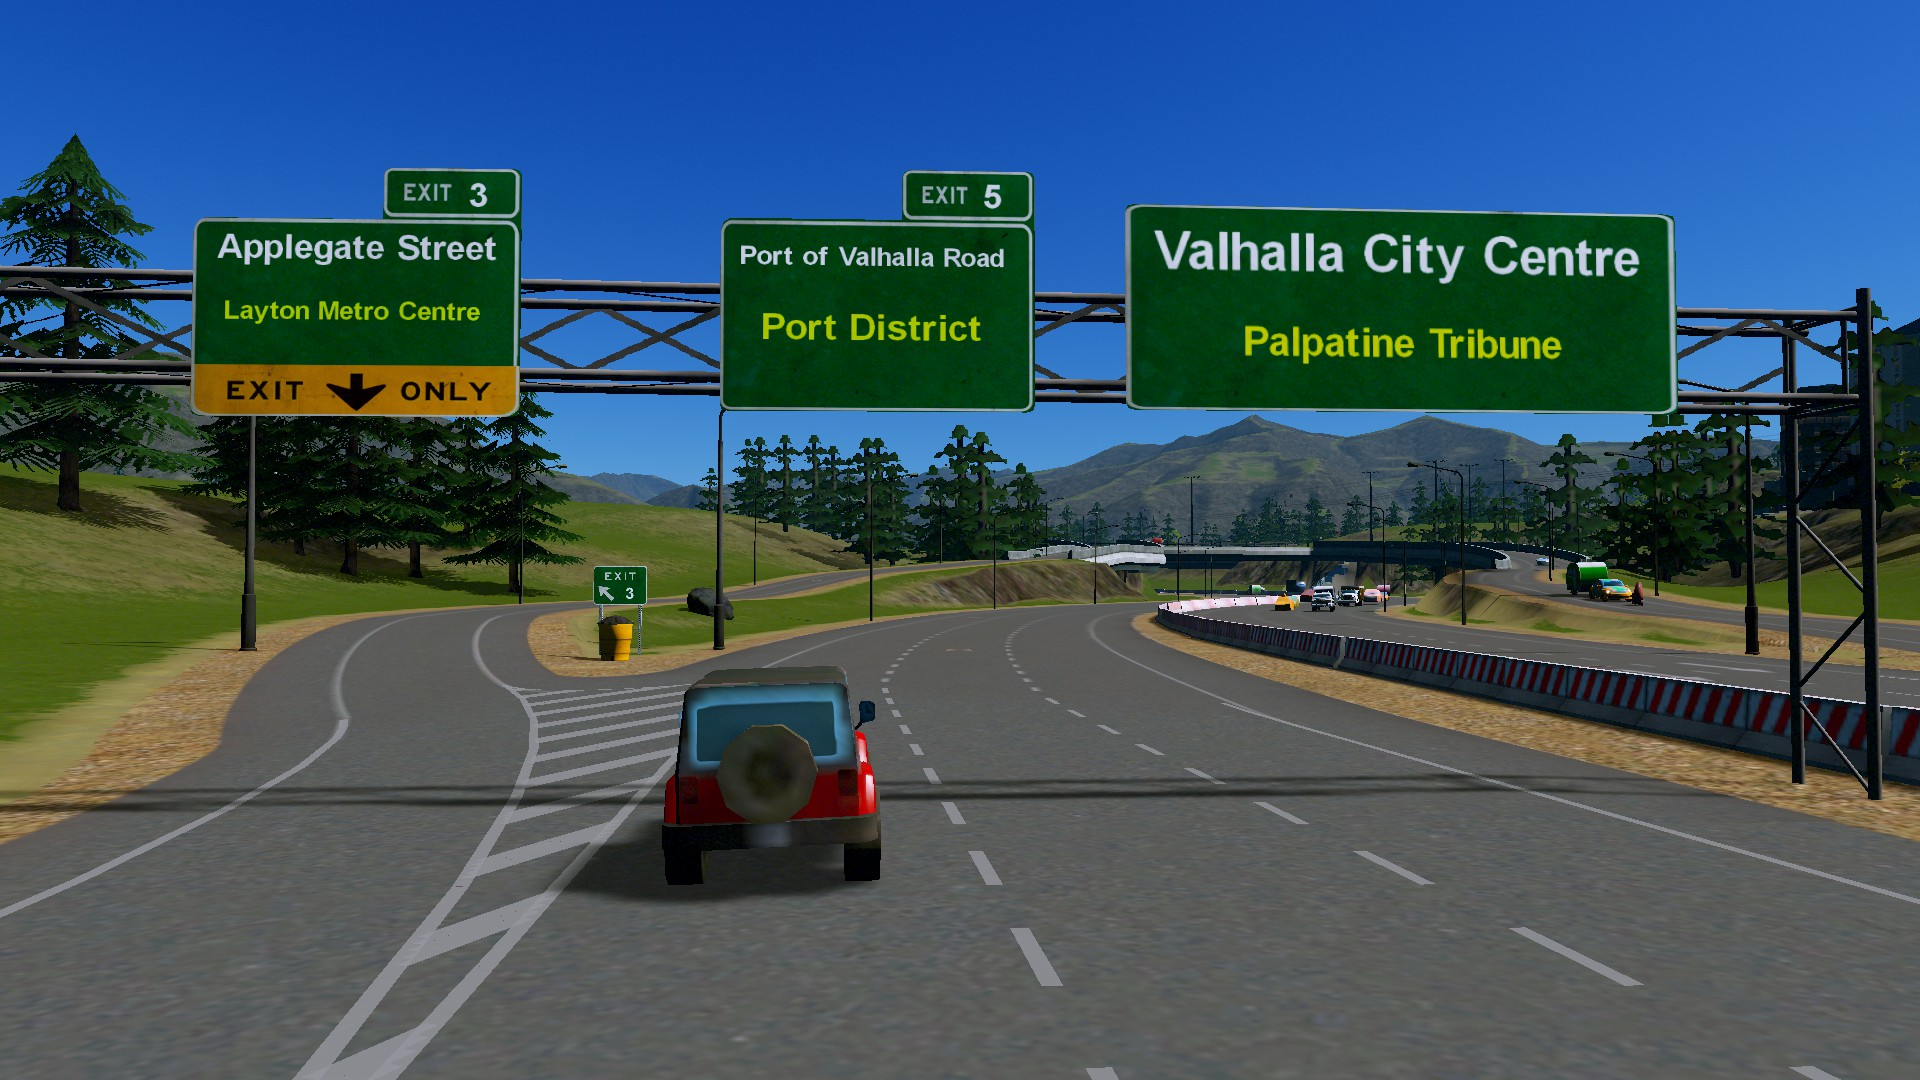 #citiesskylines Valhalla City Fly-Through. September 2020